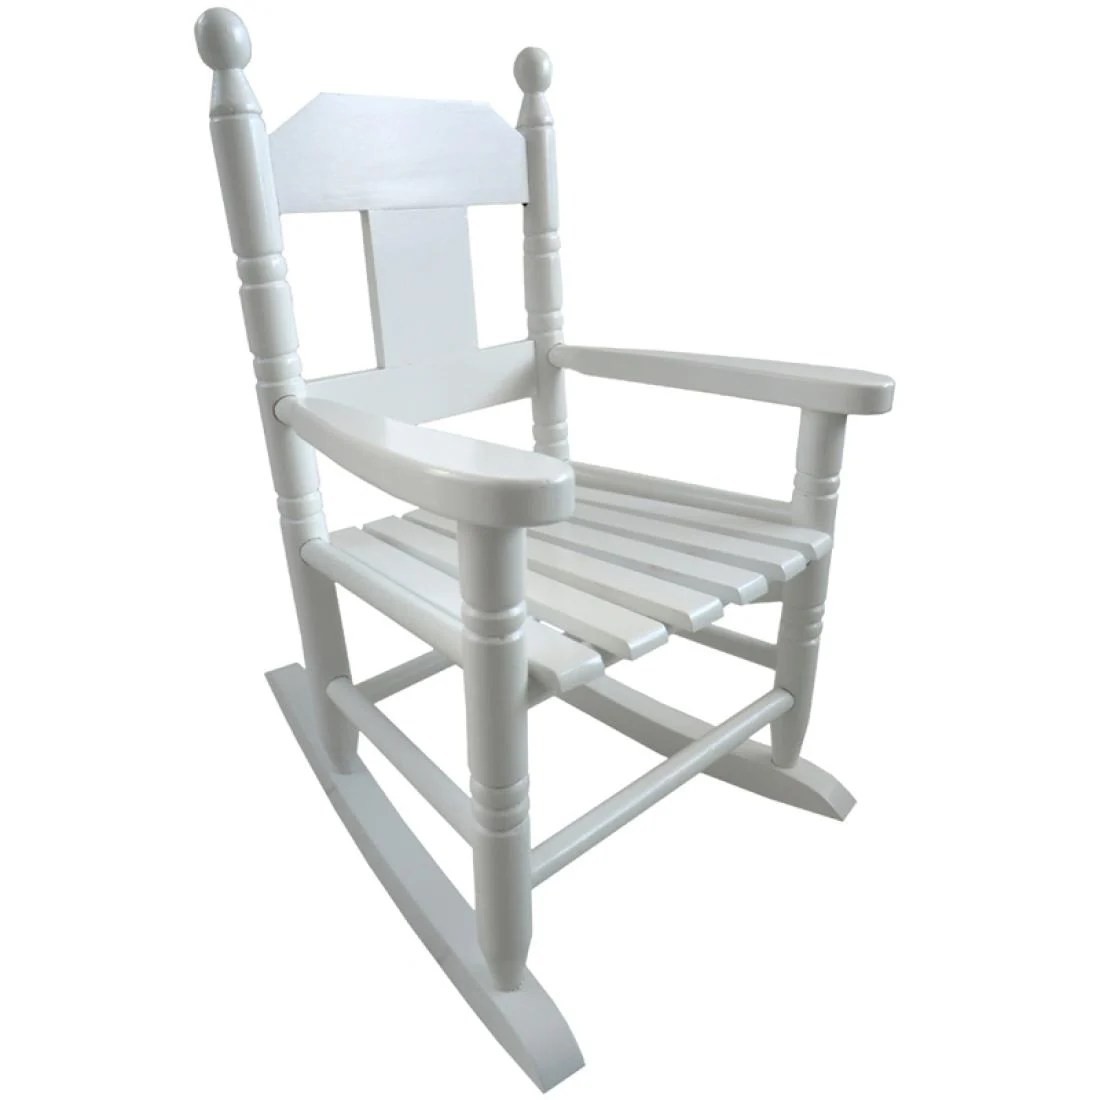 Childrens Rocking Chair White Childs Rocking Chair Childrens Rocking Chair Kids